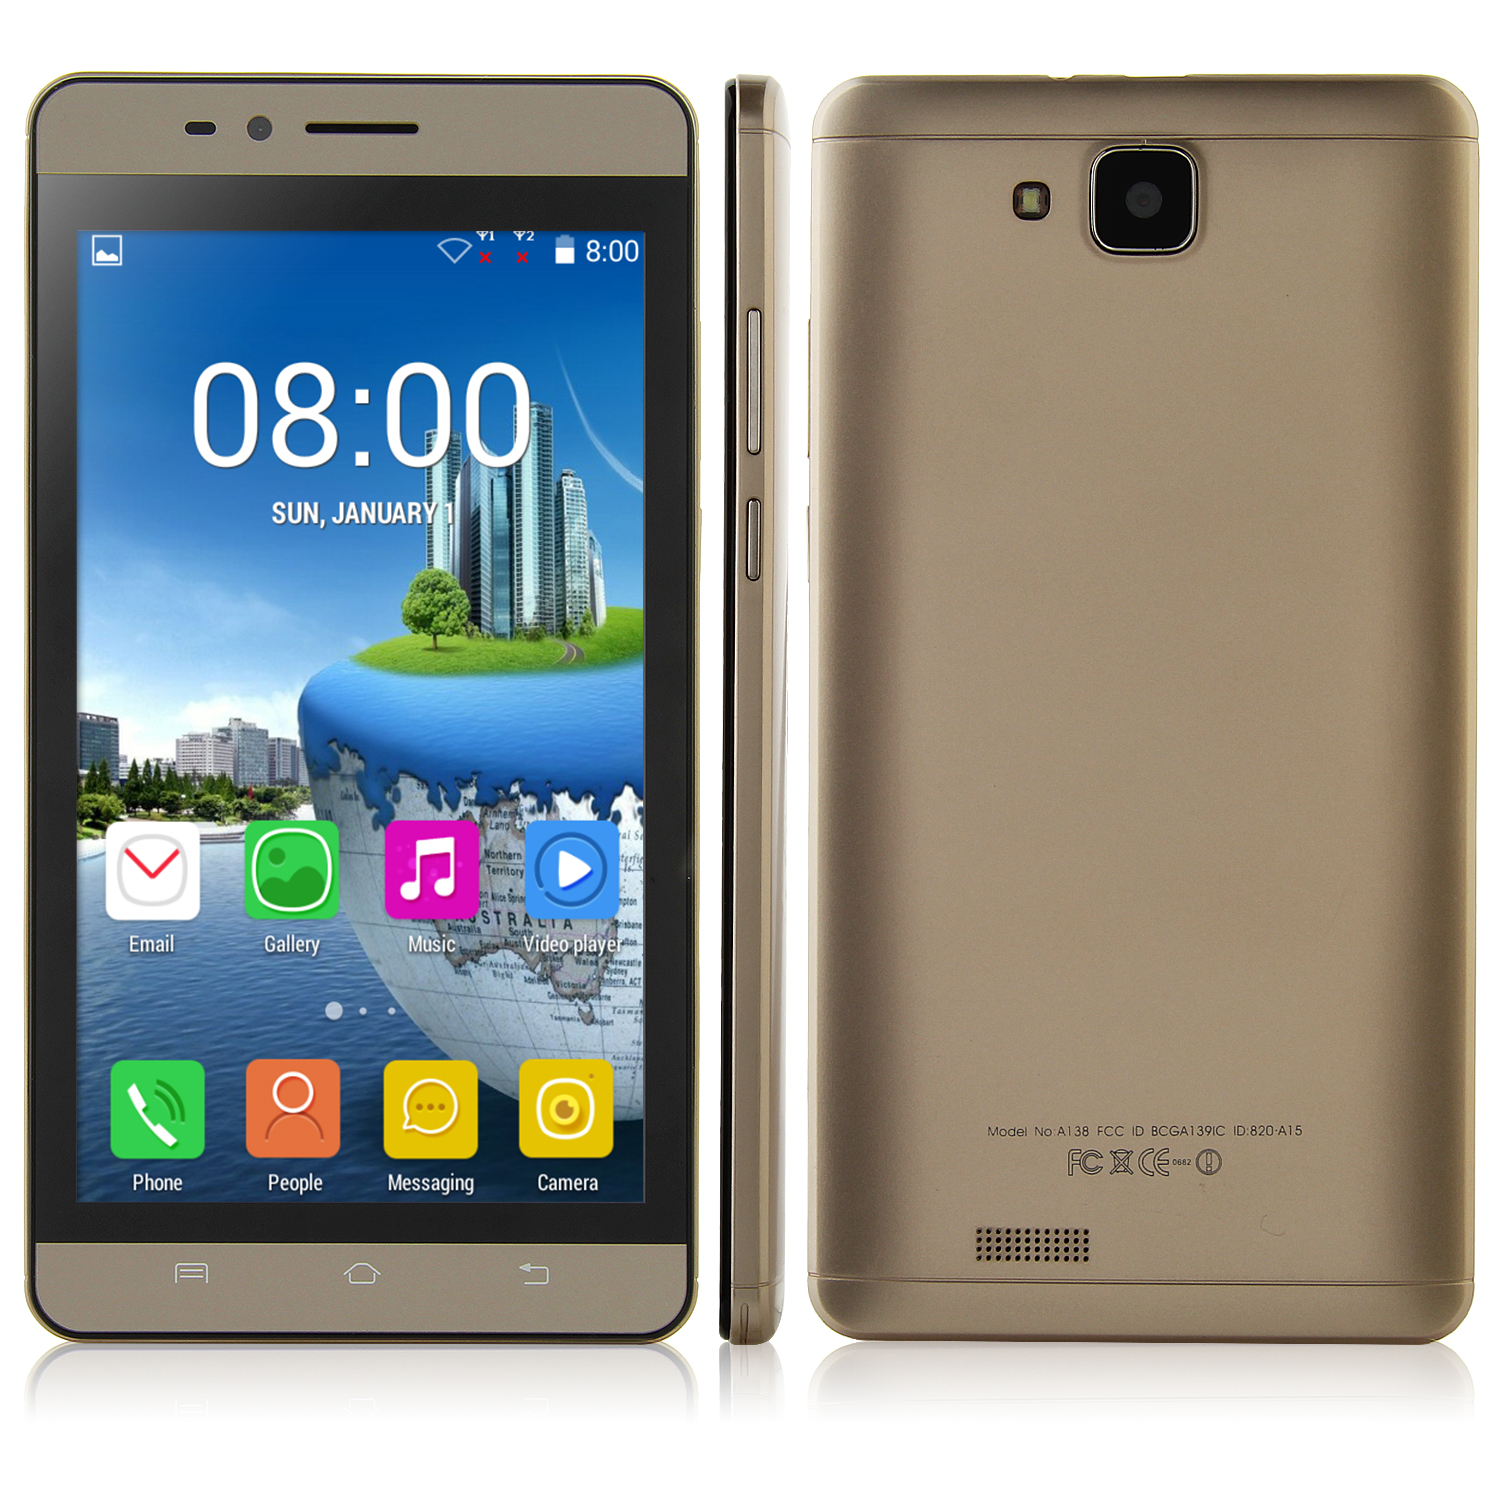 S7 Smartphone Android 4.4 MTK6572 Dual Core 5.9 Inch Screen 512MB 4GB Smart Wake Gold